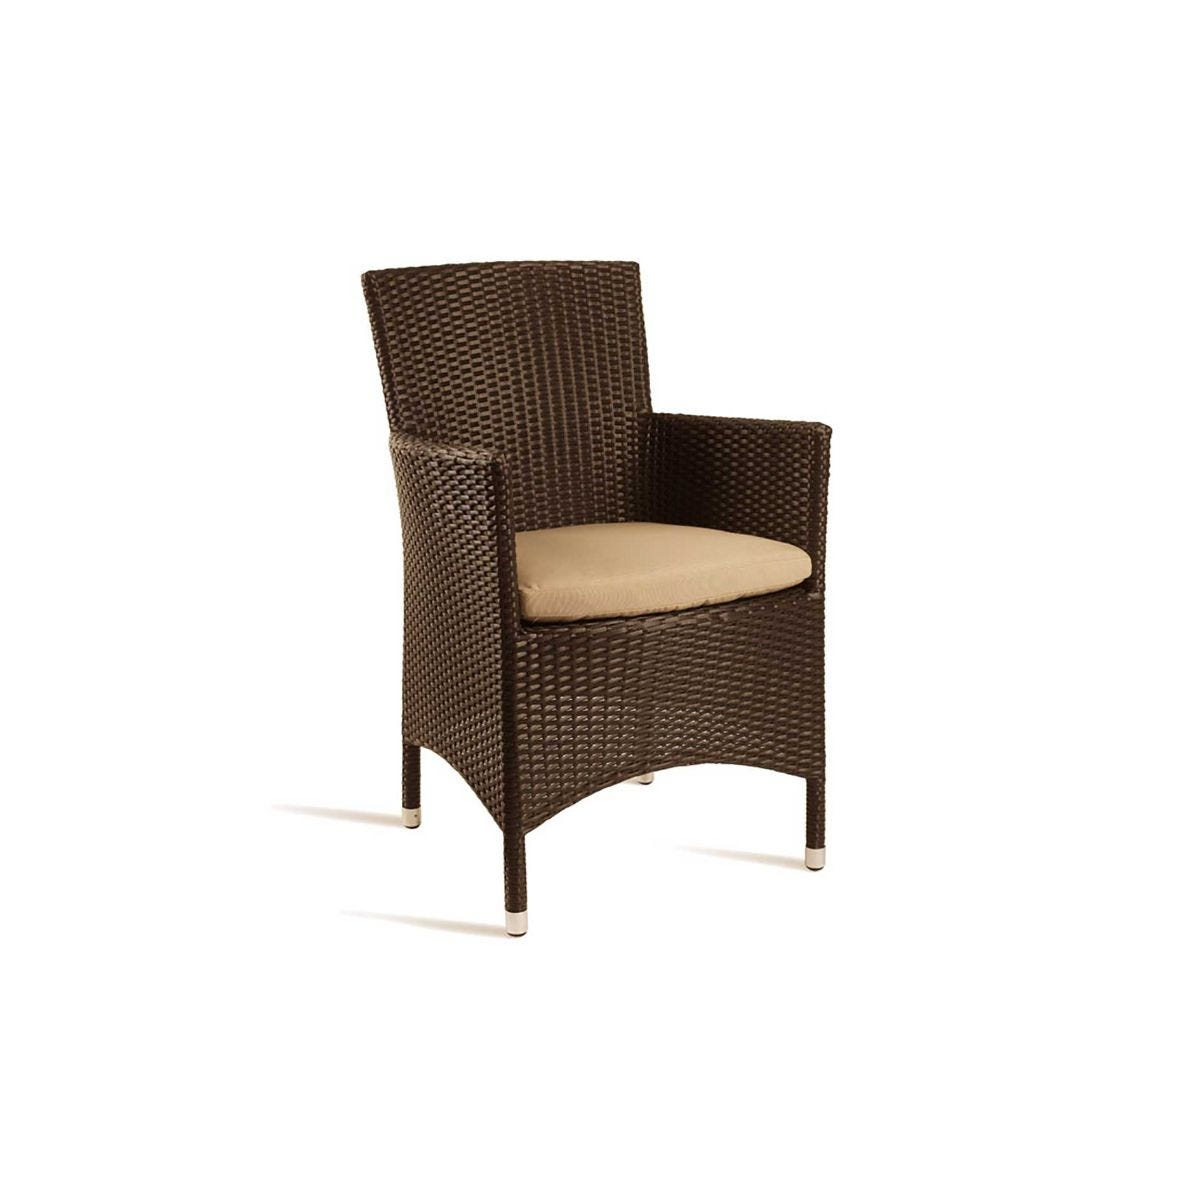 Stag Comfort Outdoor Arm Chair, Mocca